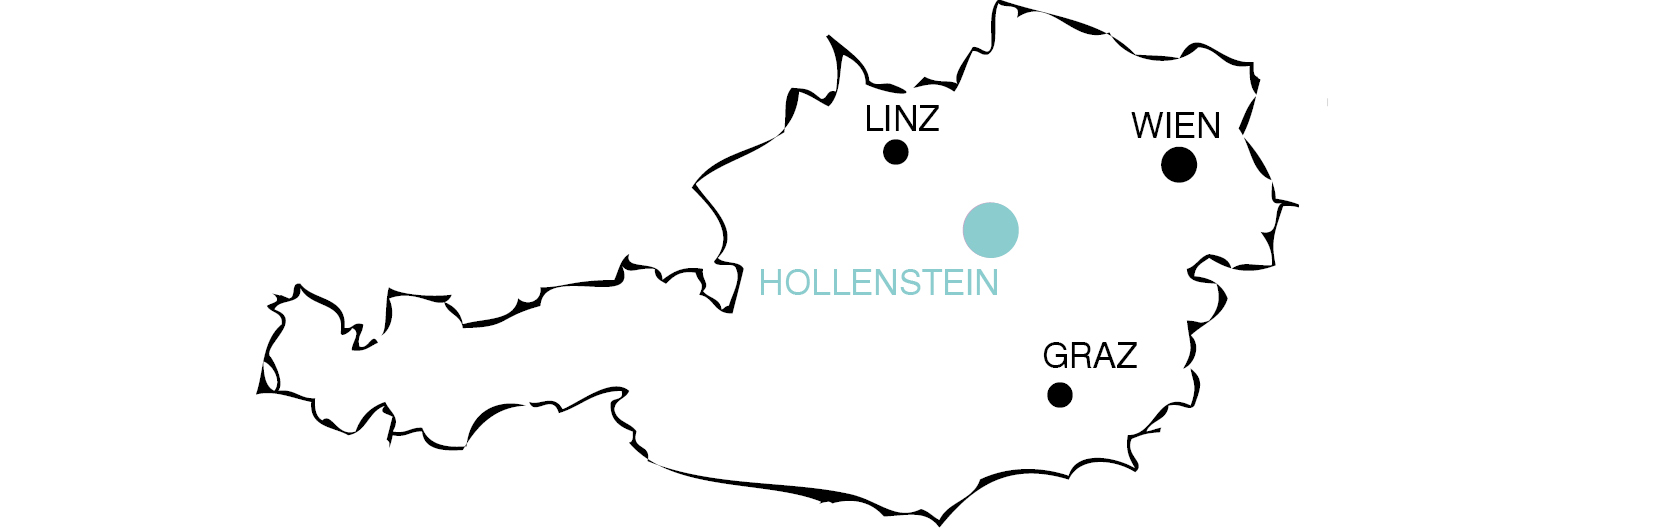 location on map of Austria